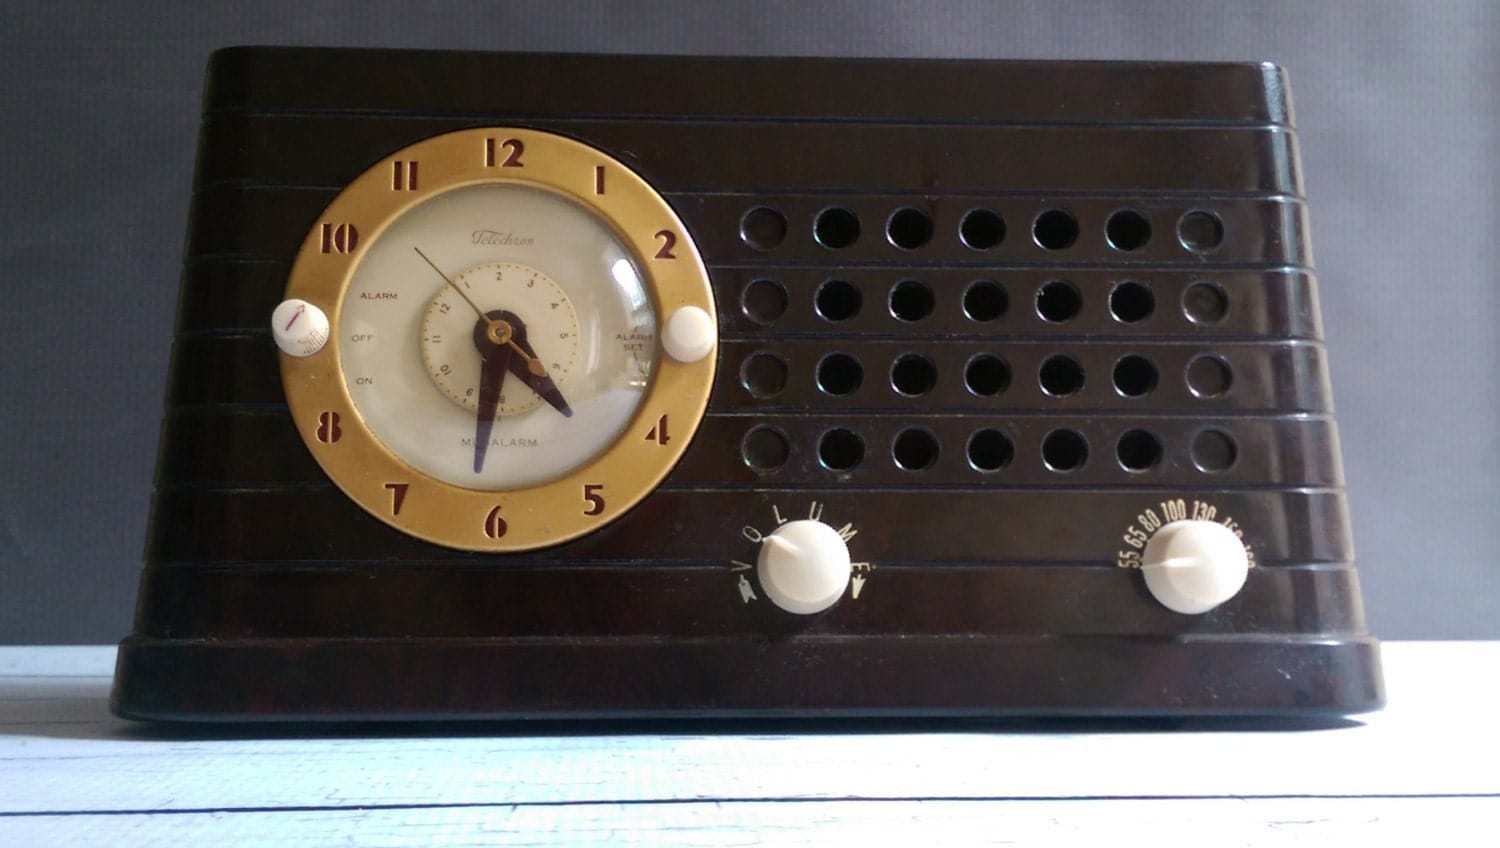 Pam Clock Replacement Parts in addition Synchron Clock Motor together with Telechron Clocks Parts also Product in addition Gas And Oil. on pam clock replacement parts